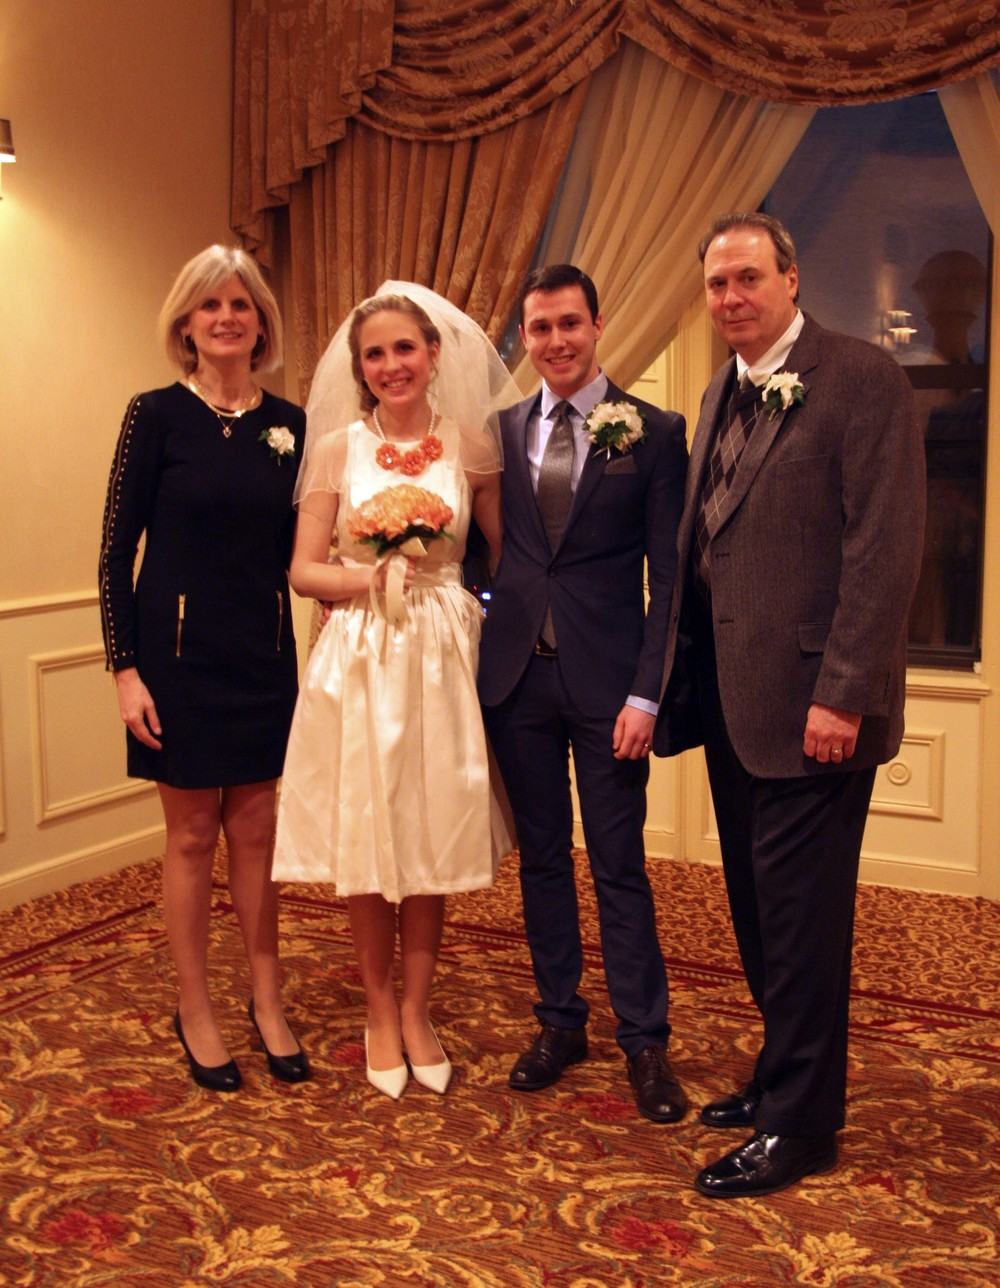 From left to right: Kris, Katy, Alex and George. Photo taken at Katy and Alex's wedding.